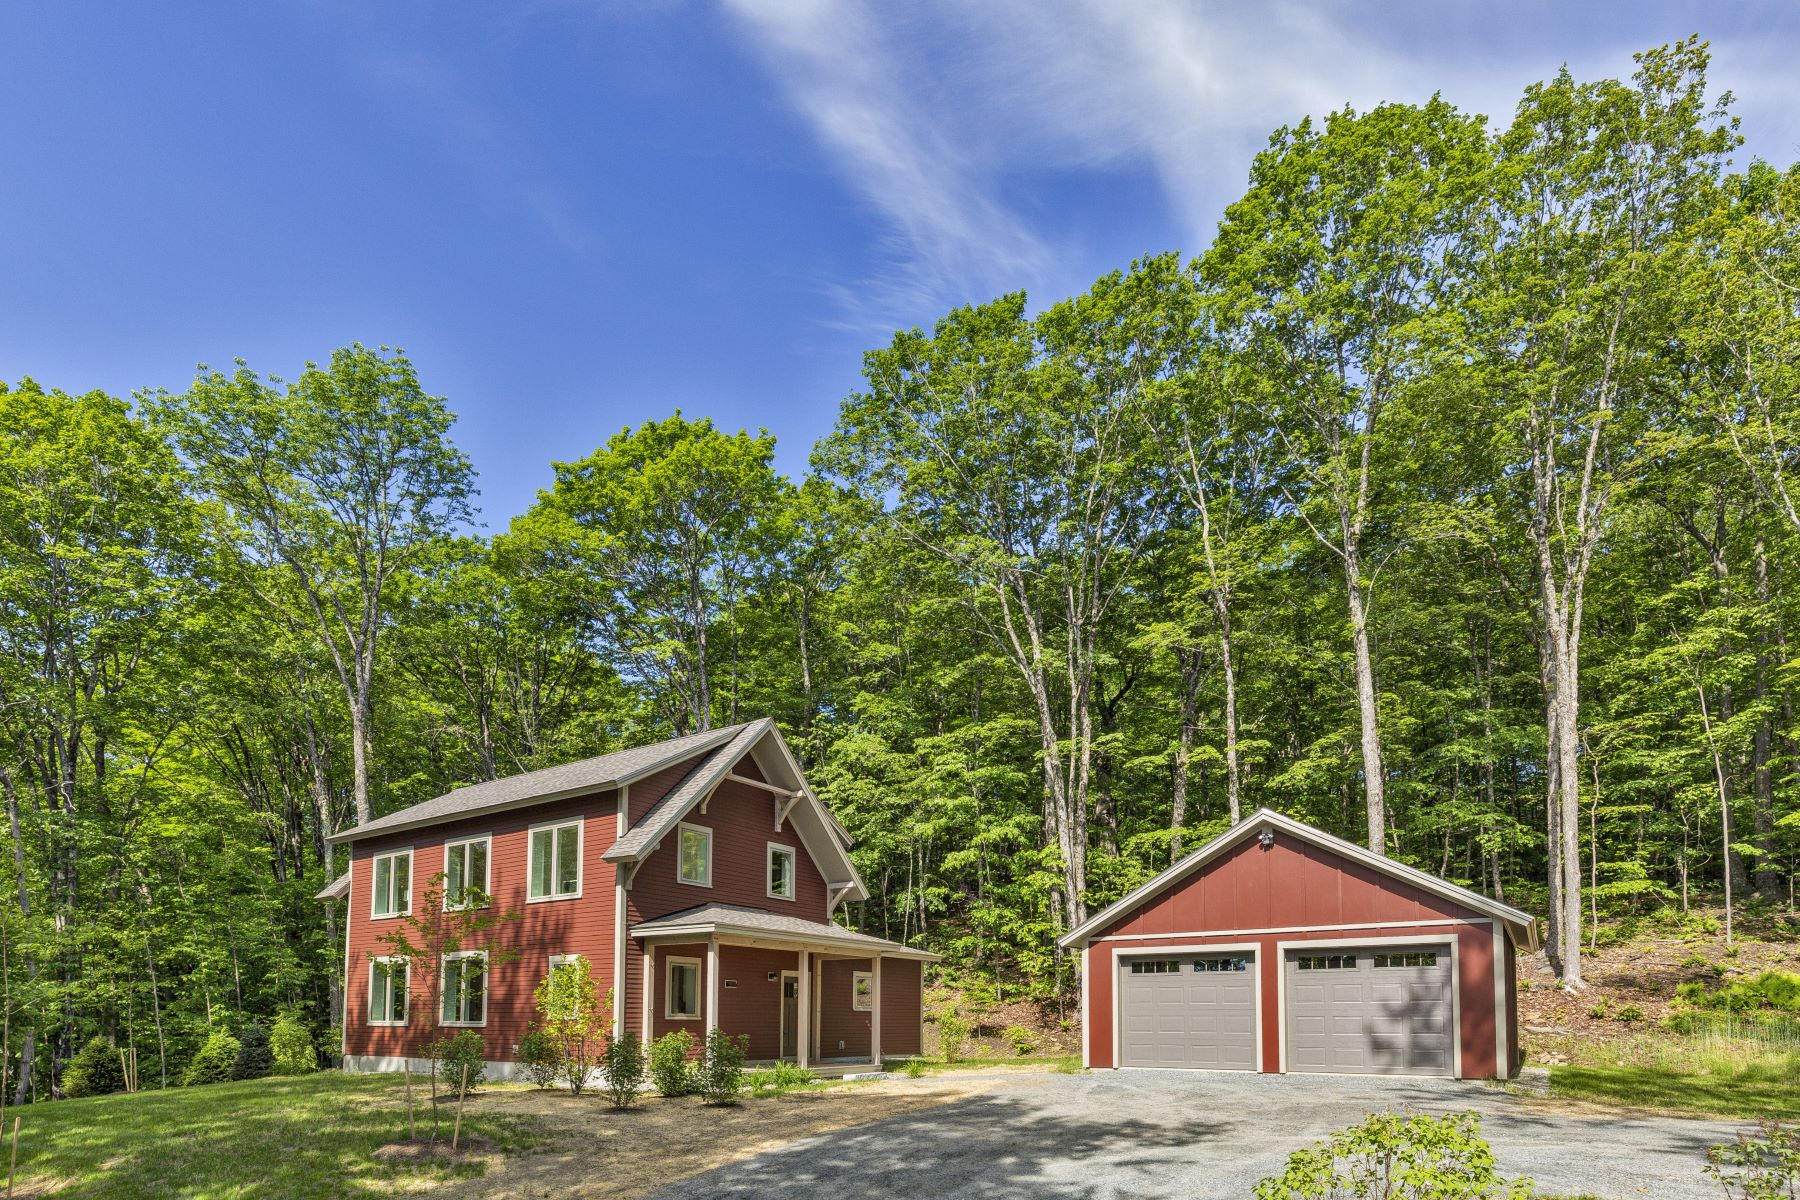 Single Family Home for Sale at Three Bedroom Farmhouse in Quechee Lakes 1880 Willard Rd 5328 Hartford, Vermont 05059 United States